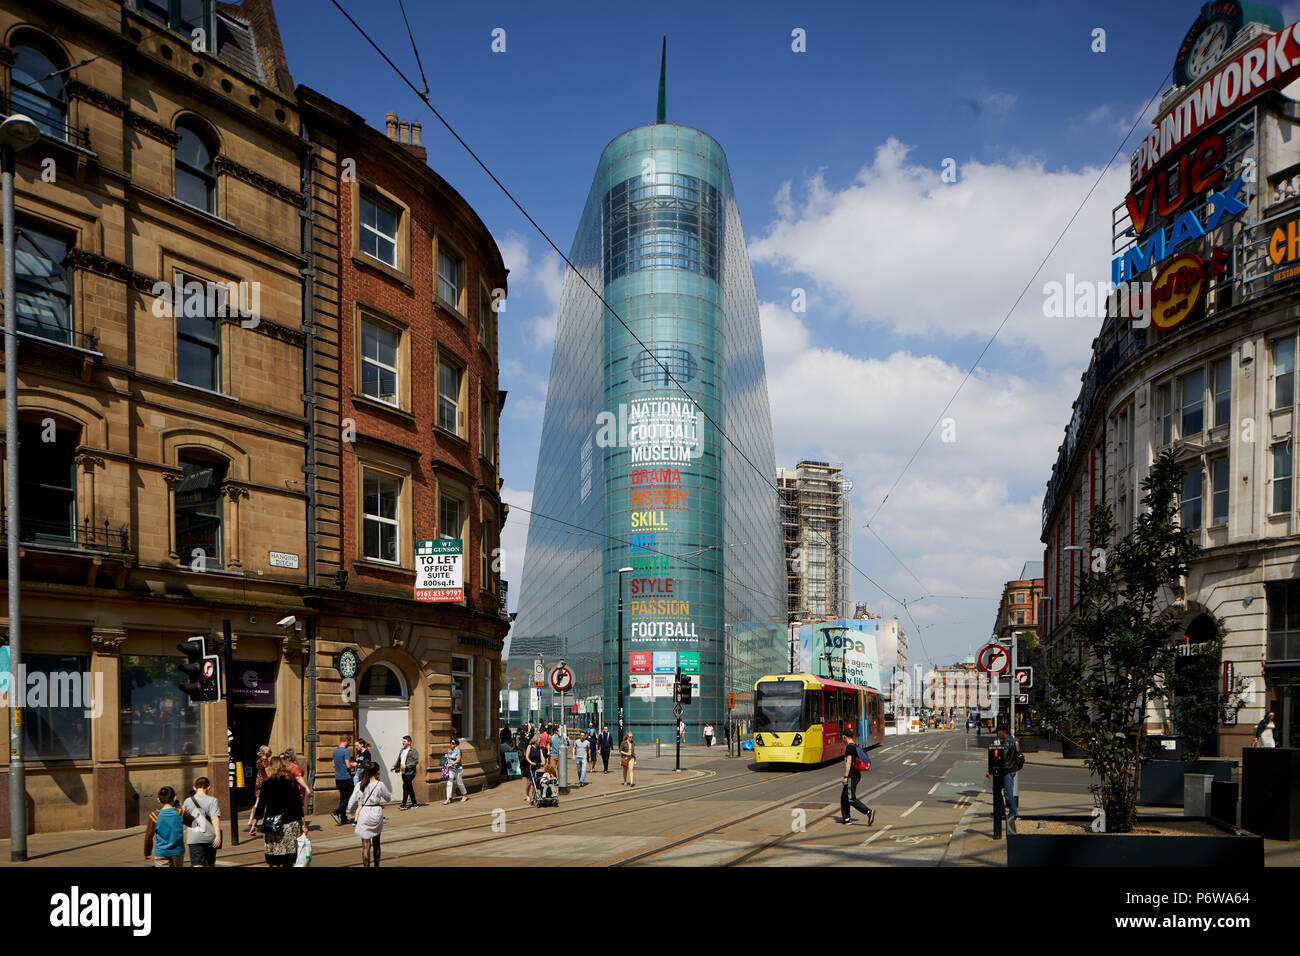 The National Football Museum is England's national museum of football. It is based in the Urbis building in Manchester city centre, designed by Ian Si - Stock Image